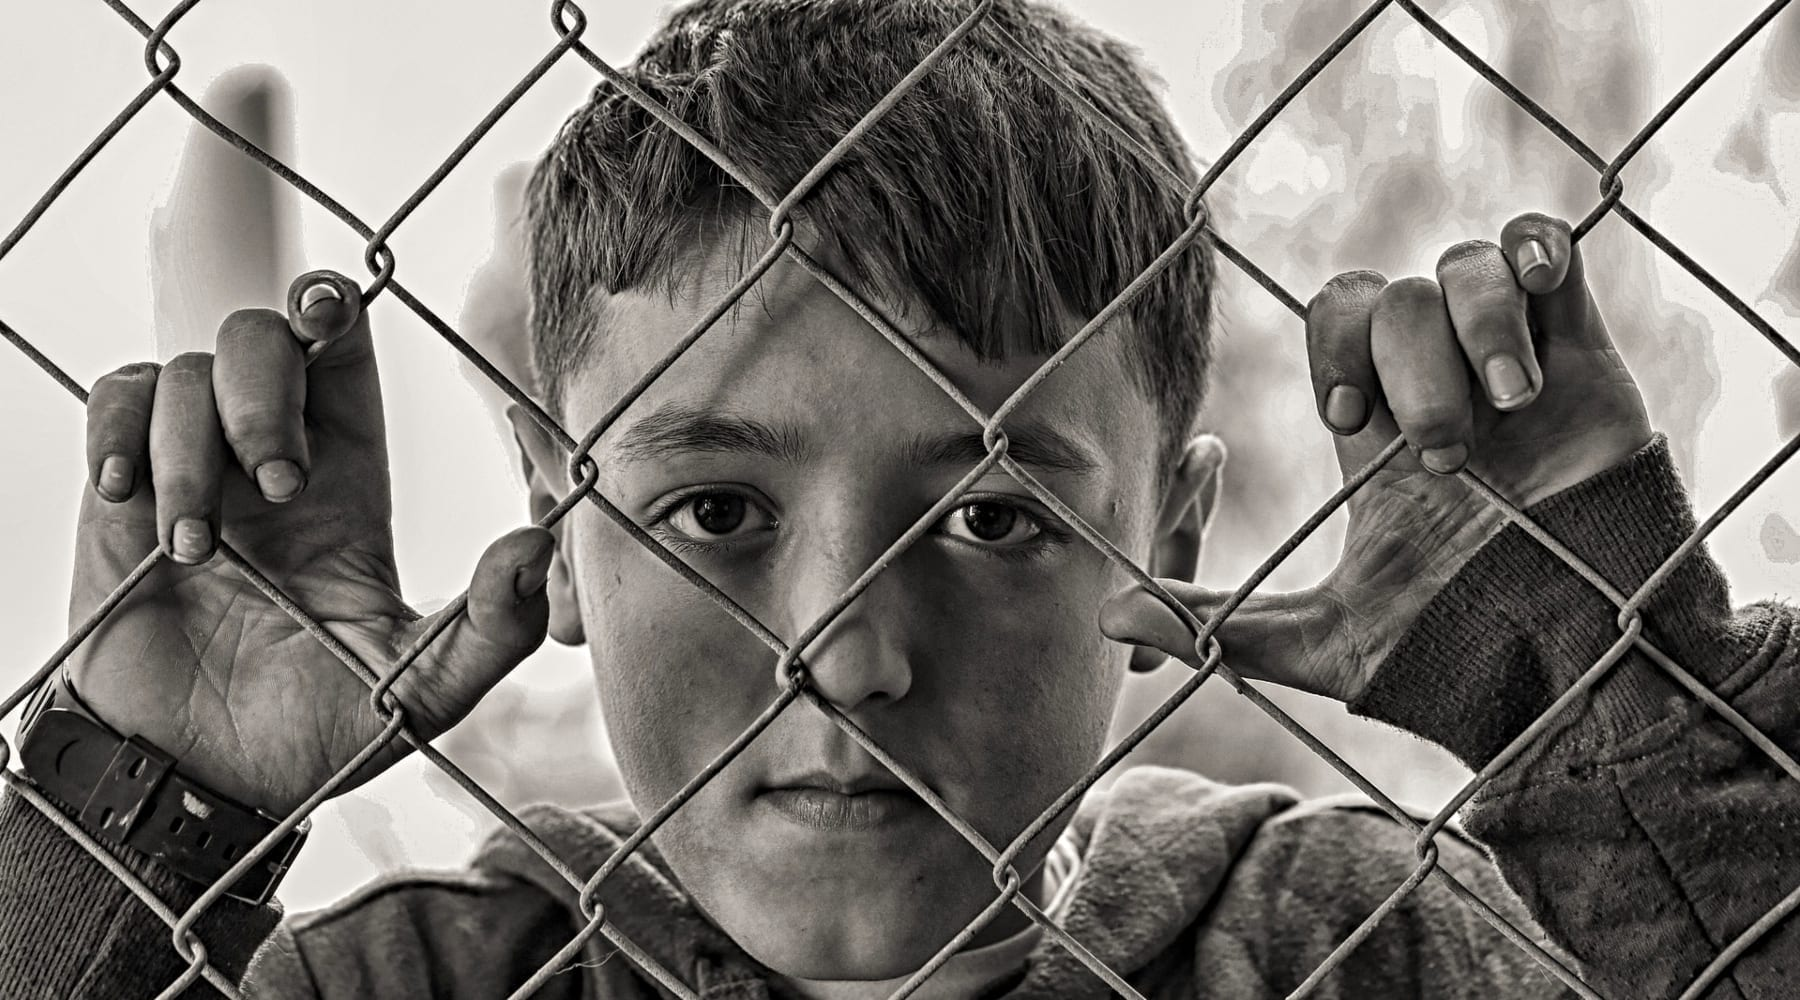 Summer Camp from Hell: Children Behind Fences